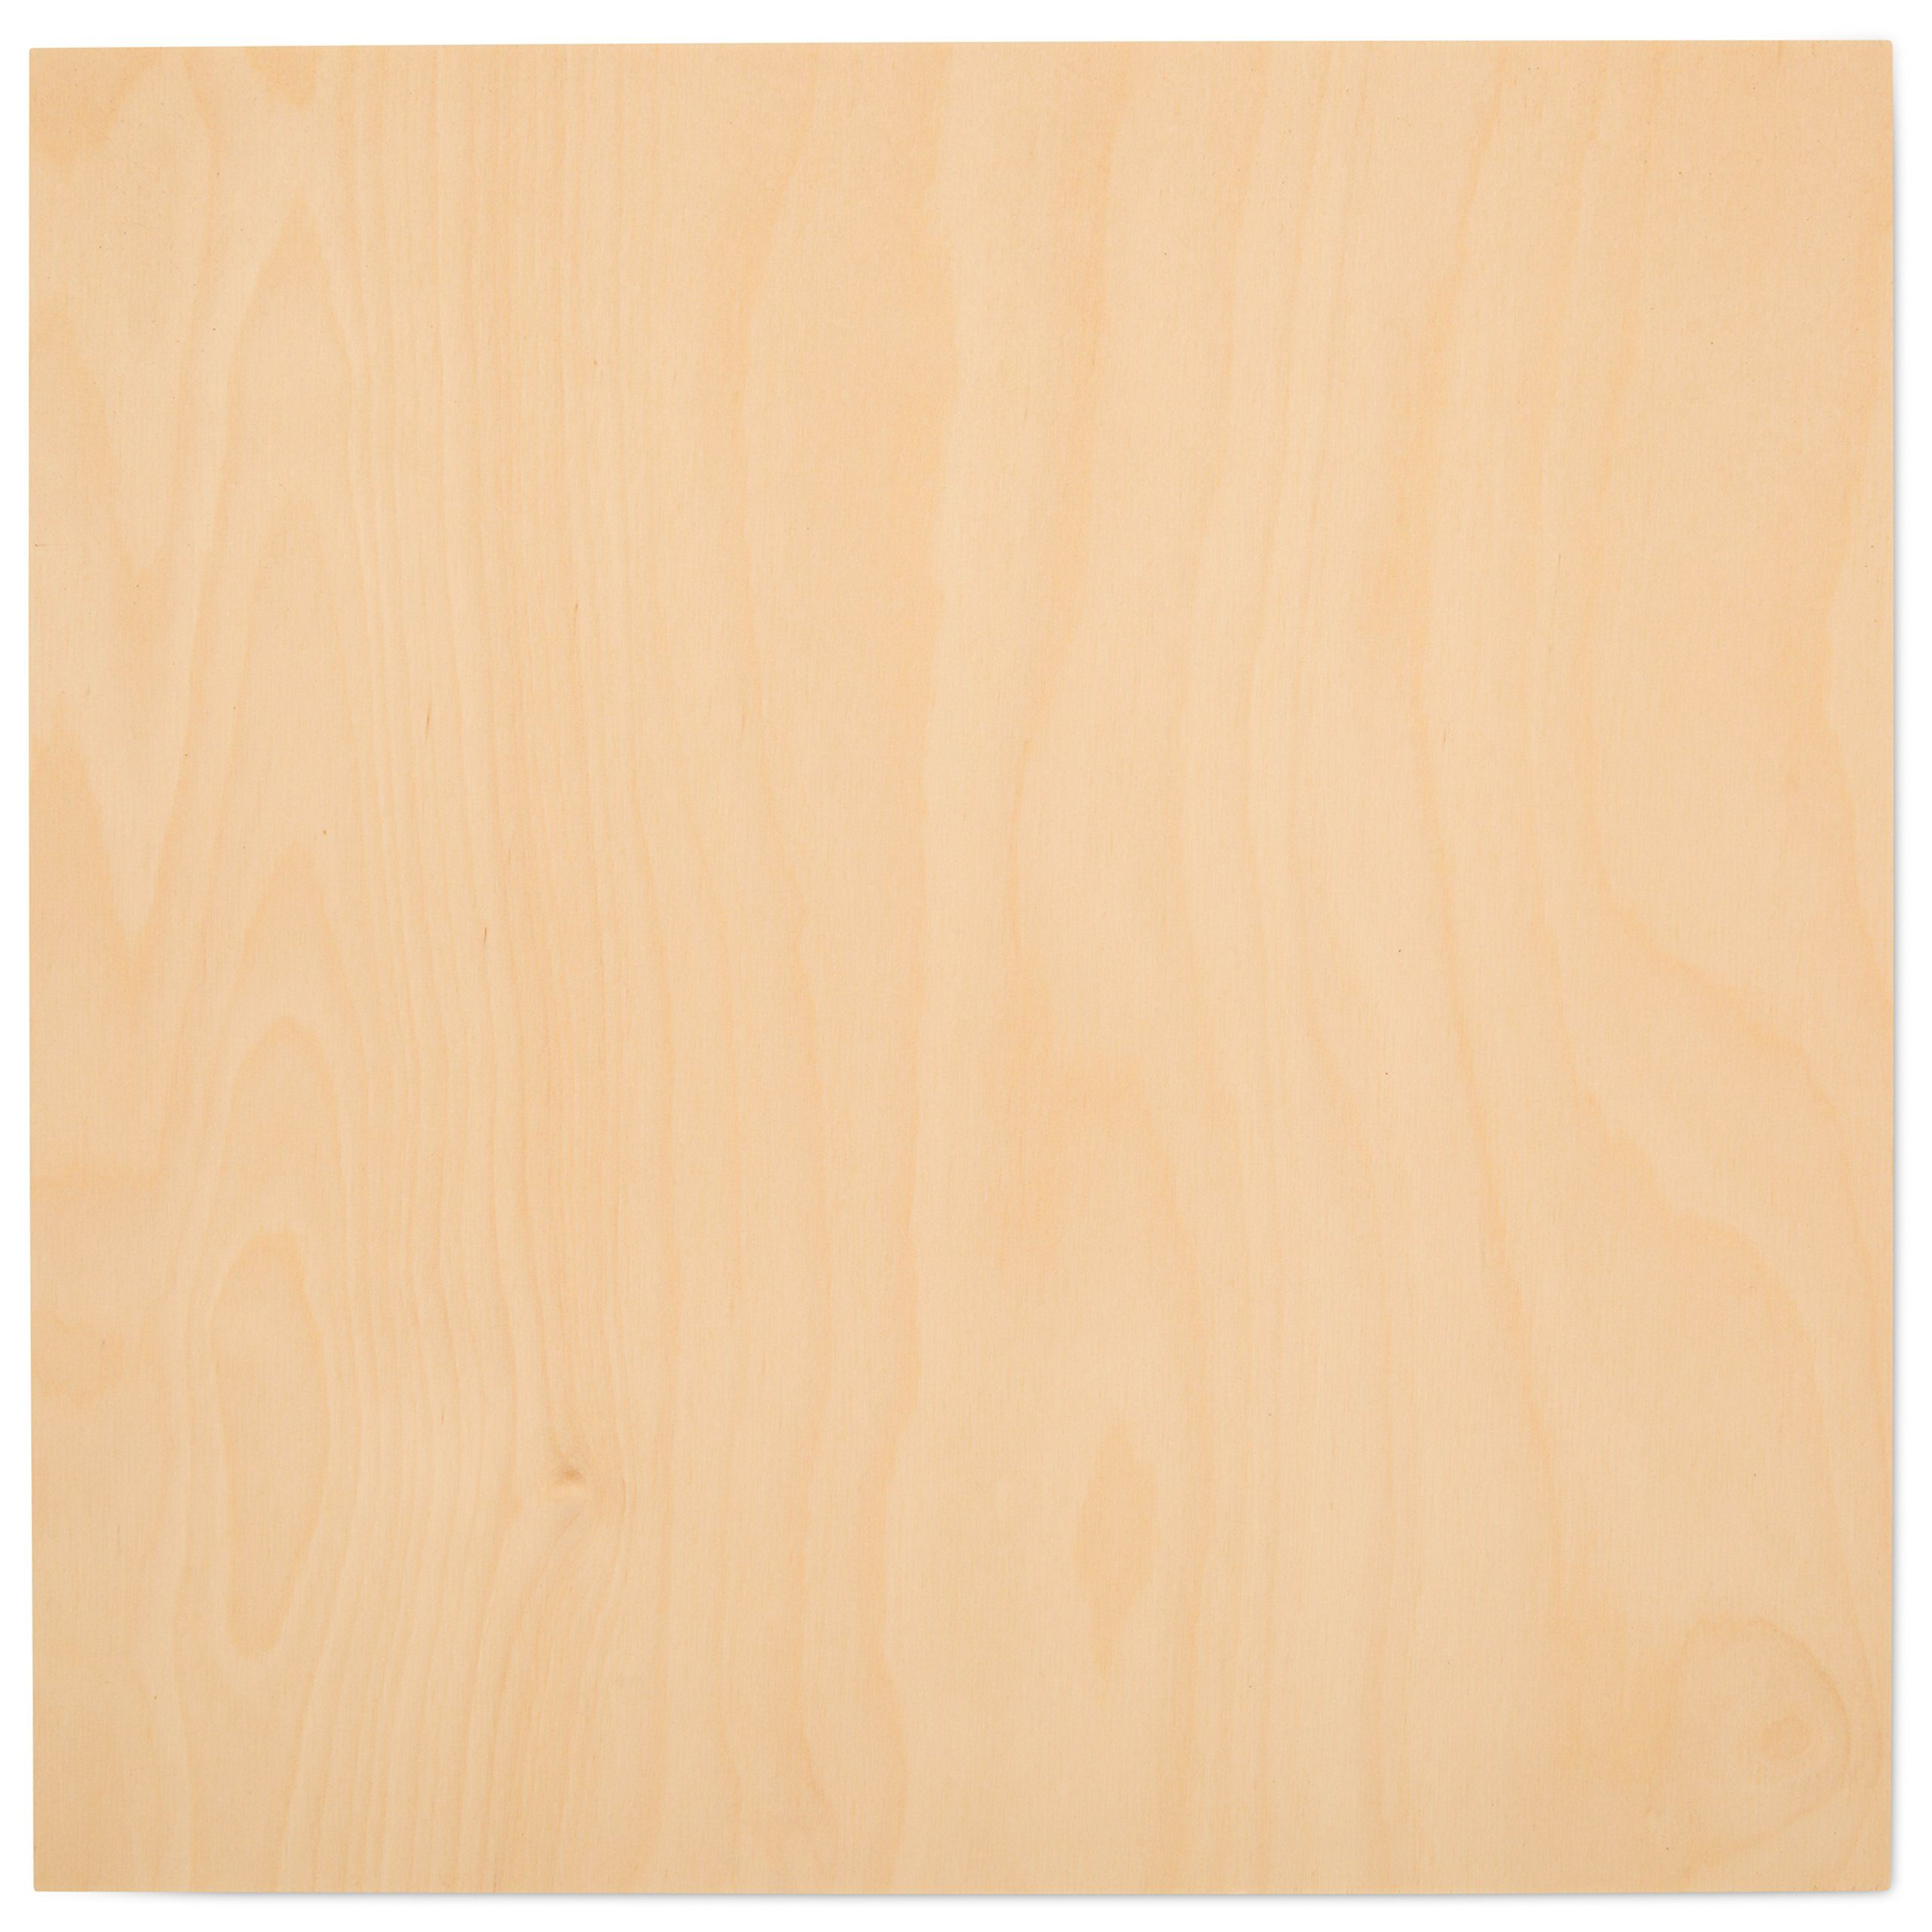 3 Mm 1 8 X 12 X 12 Premium Baltic Birch Plywood A B Bb Grade 45 Flat Sheets By Woodpeckers Check Th Baltic Birch Plywood Birch Plywood Wood Veneer Sheets